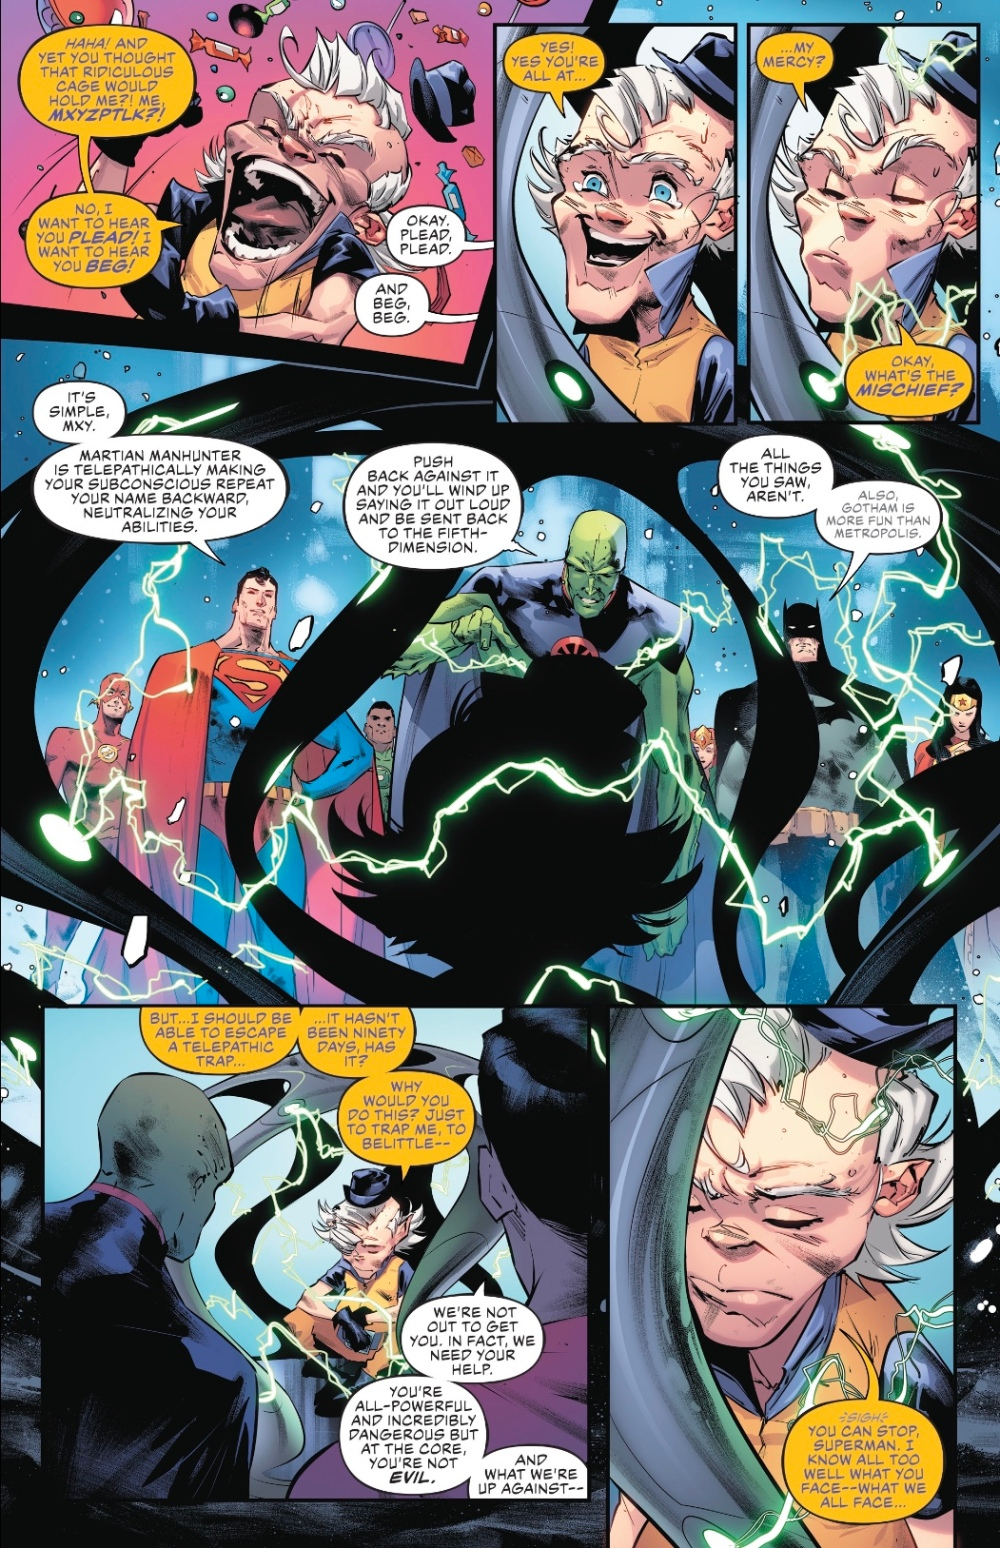 Justice League #19 review – Too Dangerous For a Girl 2